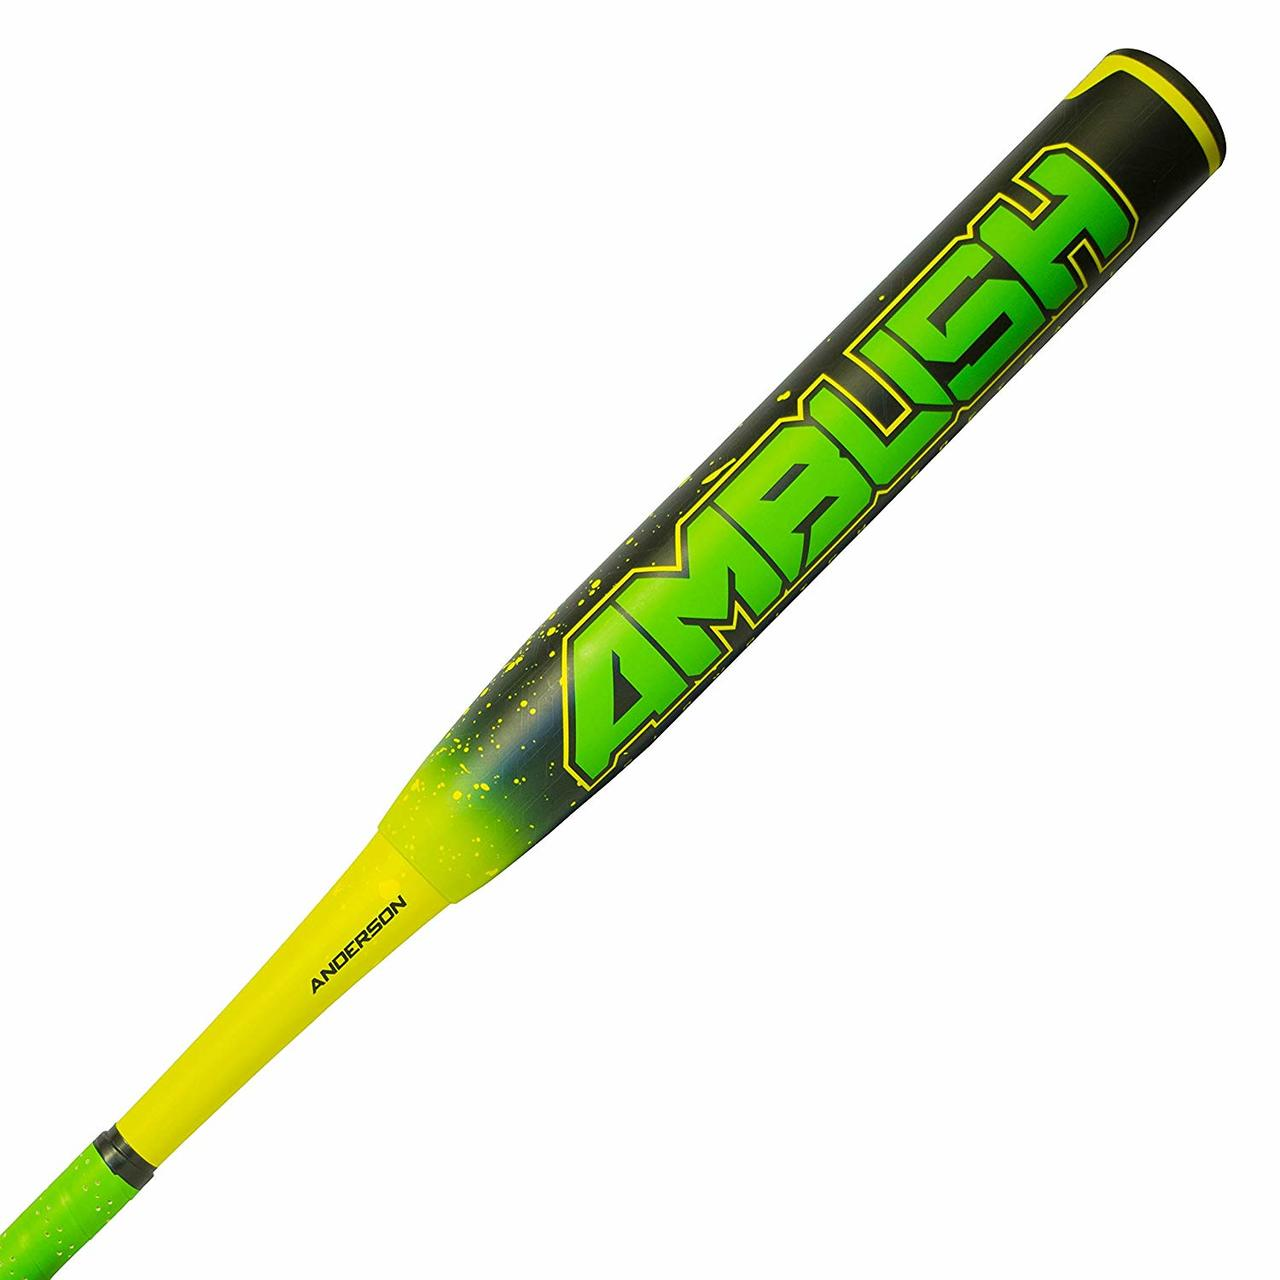 anderson-2018-ambush-composite-slowpitch-softball-bat-34-in-26-oz 011046-3426 Anderson 874147008669 wo-piece Multi layered Composite for performance and durability ½ Ounce end